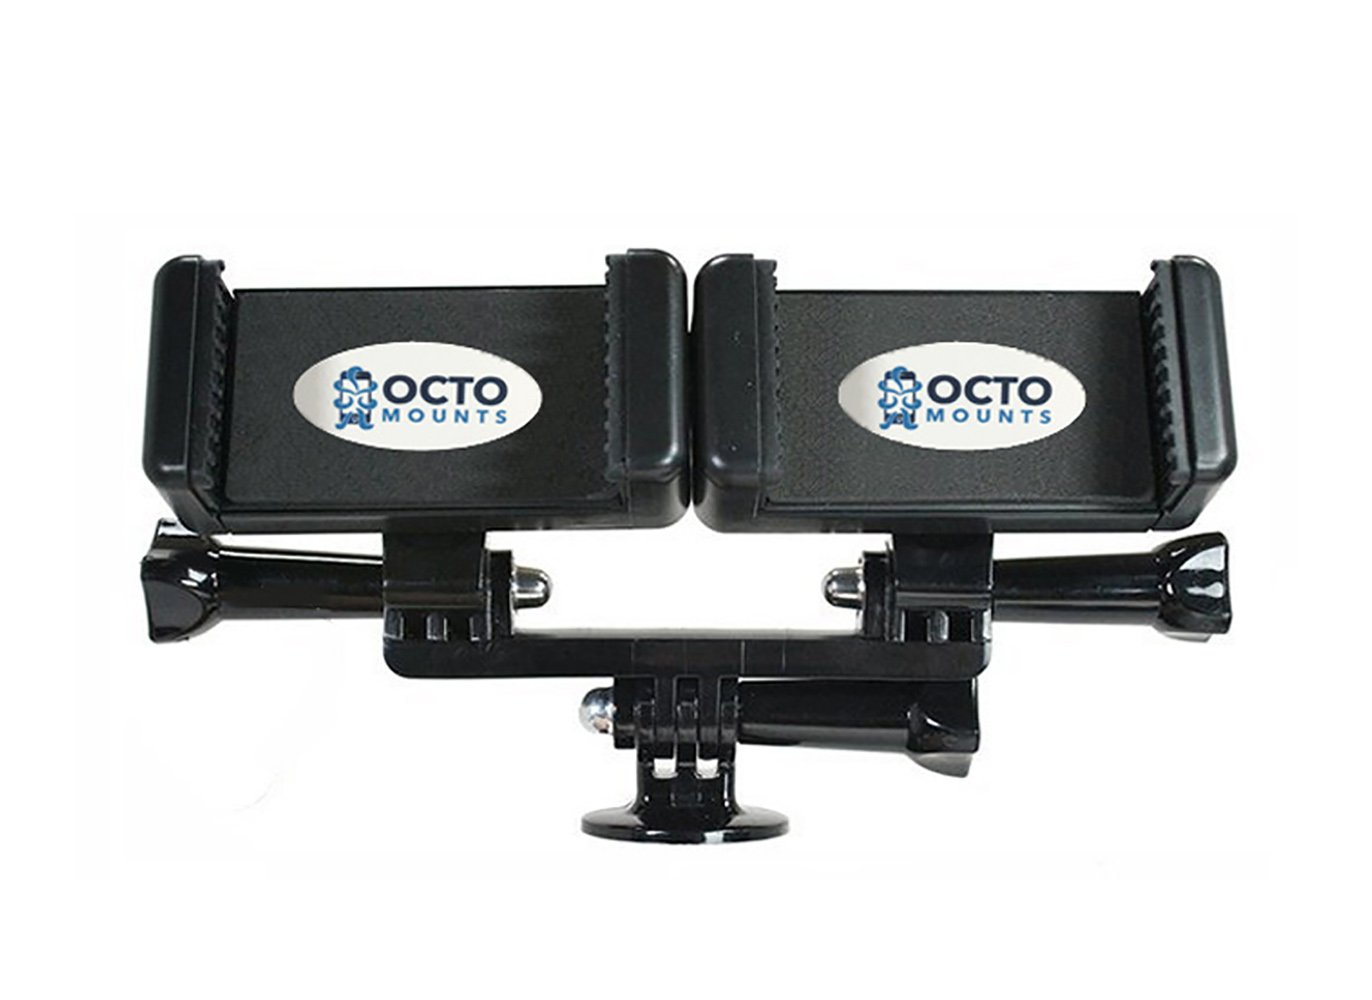 OCTO MOUNT - Dual Cellphone Mount Adapter for Smartphone Tripod or MonoPod. Also Works with Sport Cameras Like GoPro.